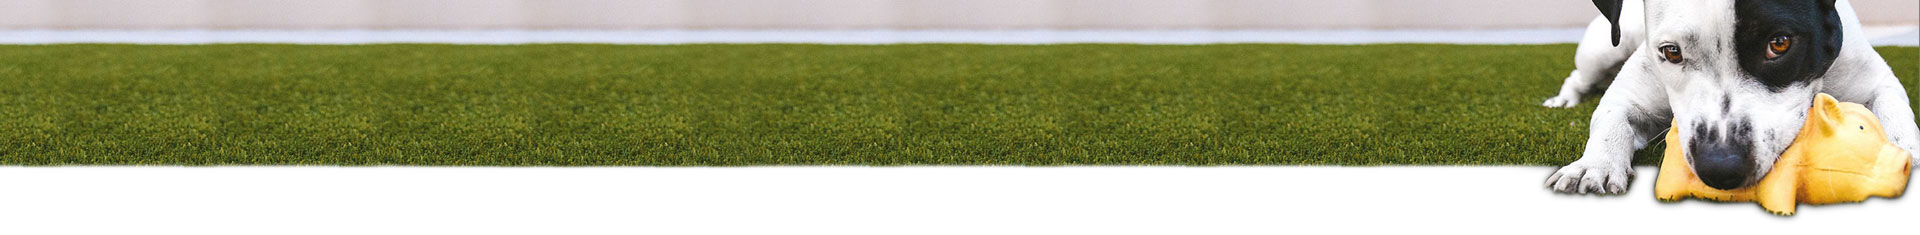 Residential Artificial Grass Maintenance Service